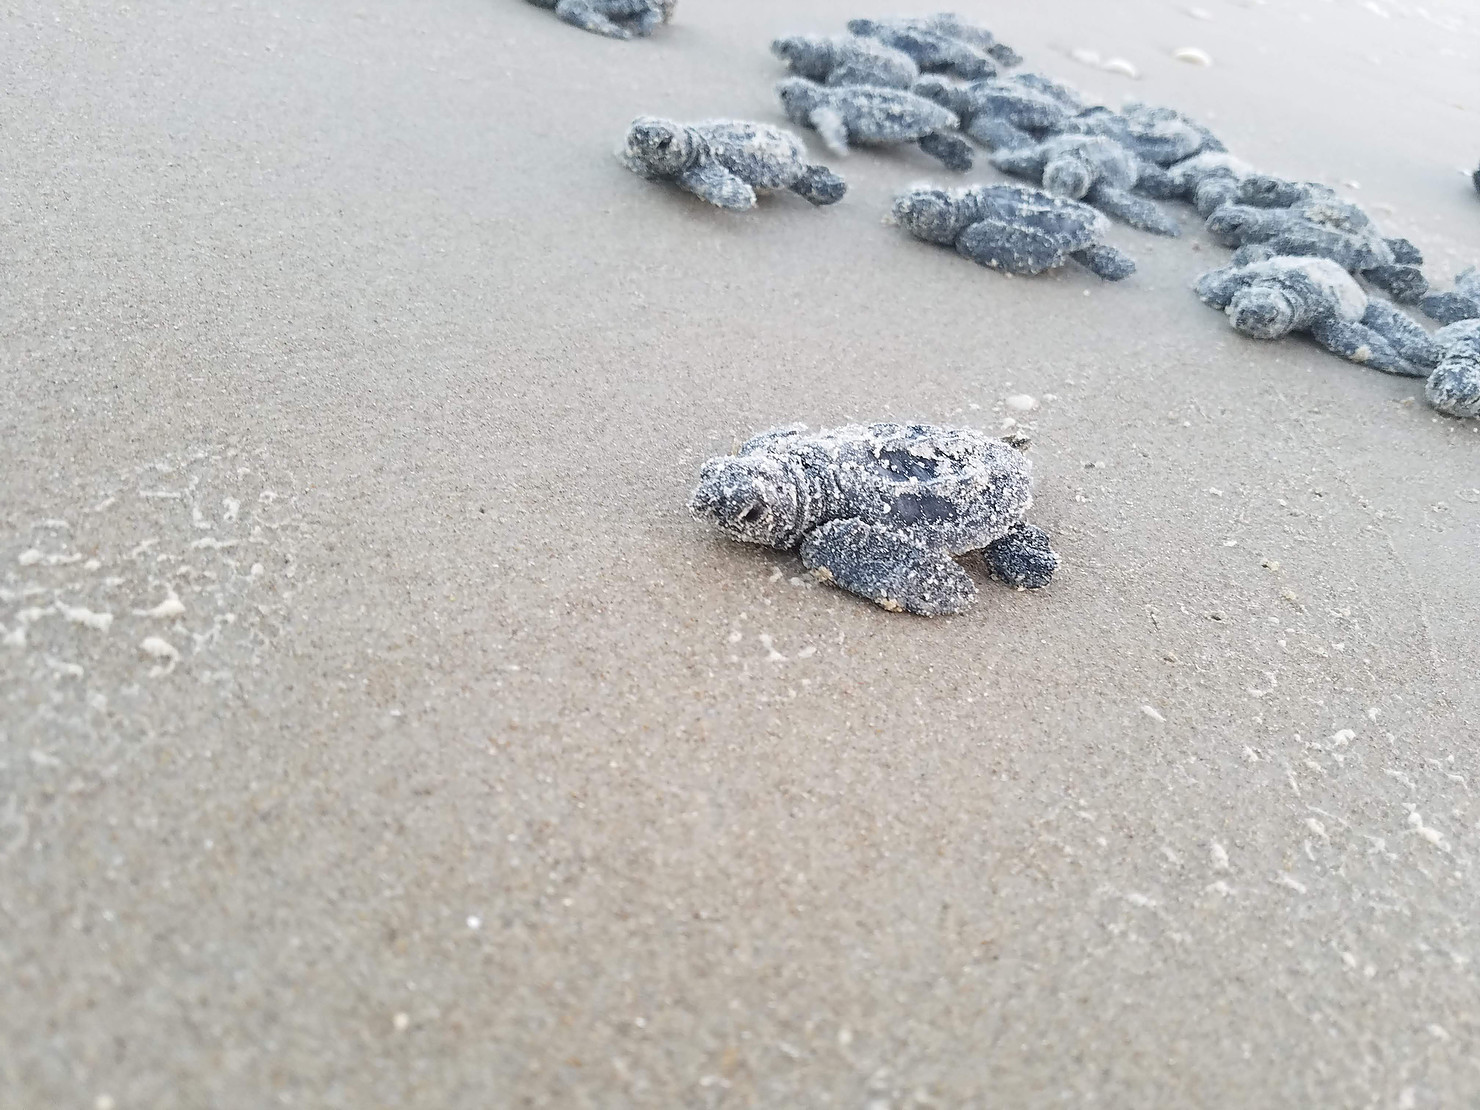 A Kemp's Ridley sea turtle hatchling making its way back to the ocean. Photo: @K9s4Conservation